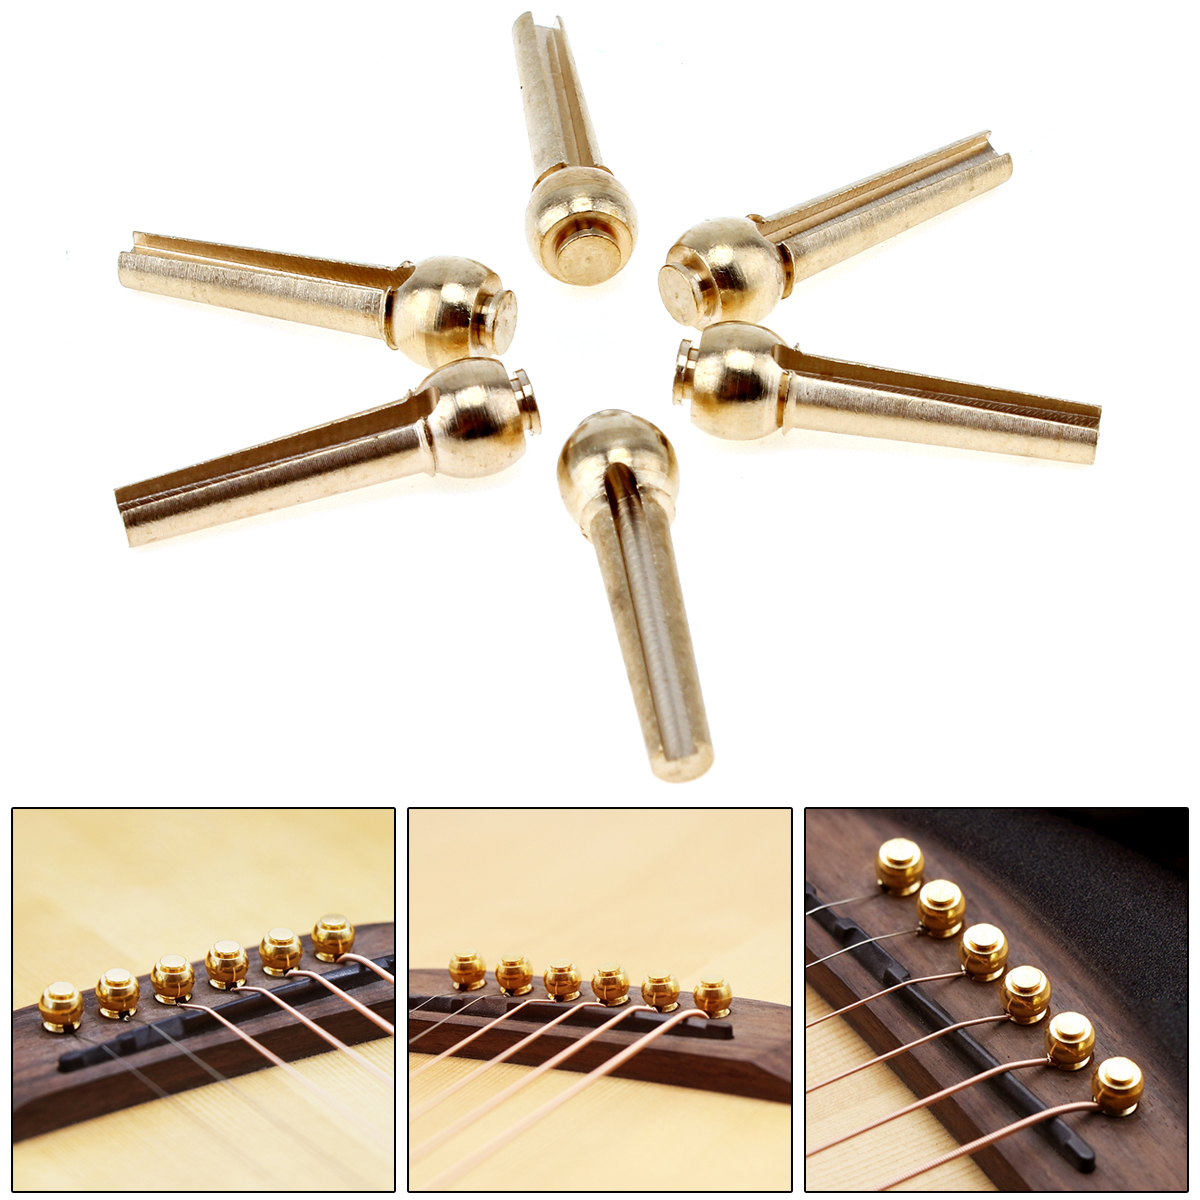 6pcs/set Pure Copper Brass Guitar Bridge Pin Strings Nail Pegs for Folk / Acoustic Guitar Keep Full Timbre